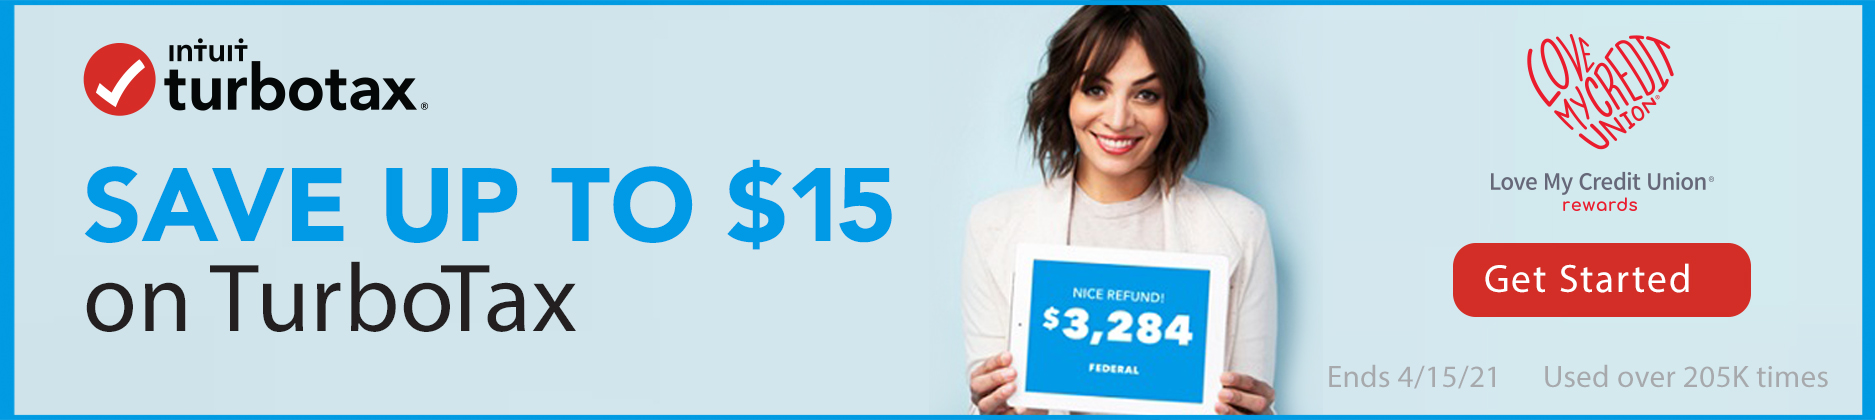 Members can save up to $15 on TurboTax!